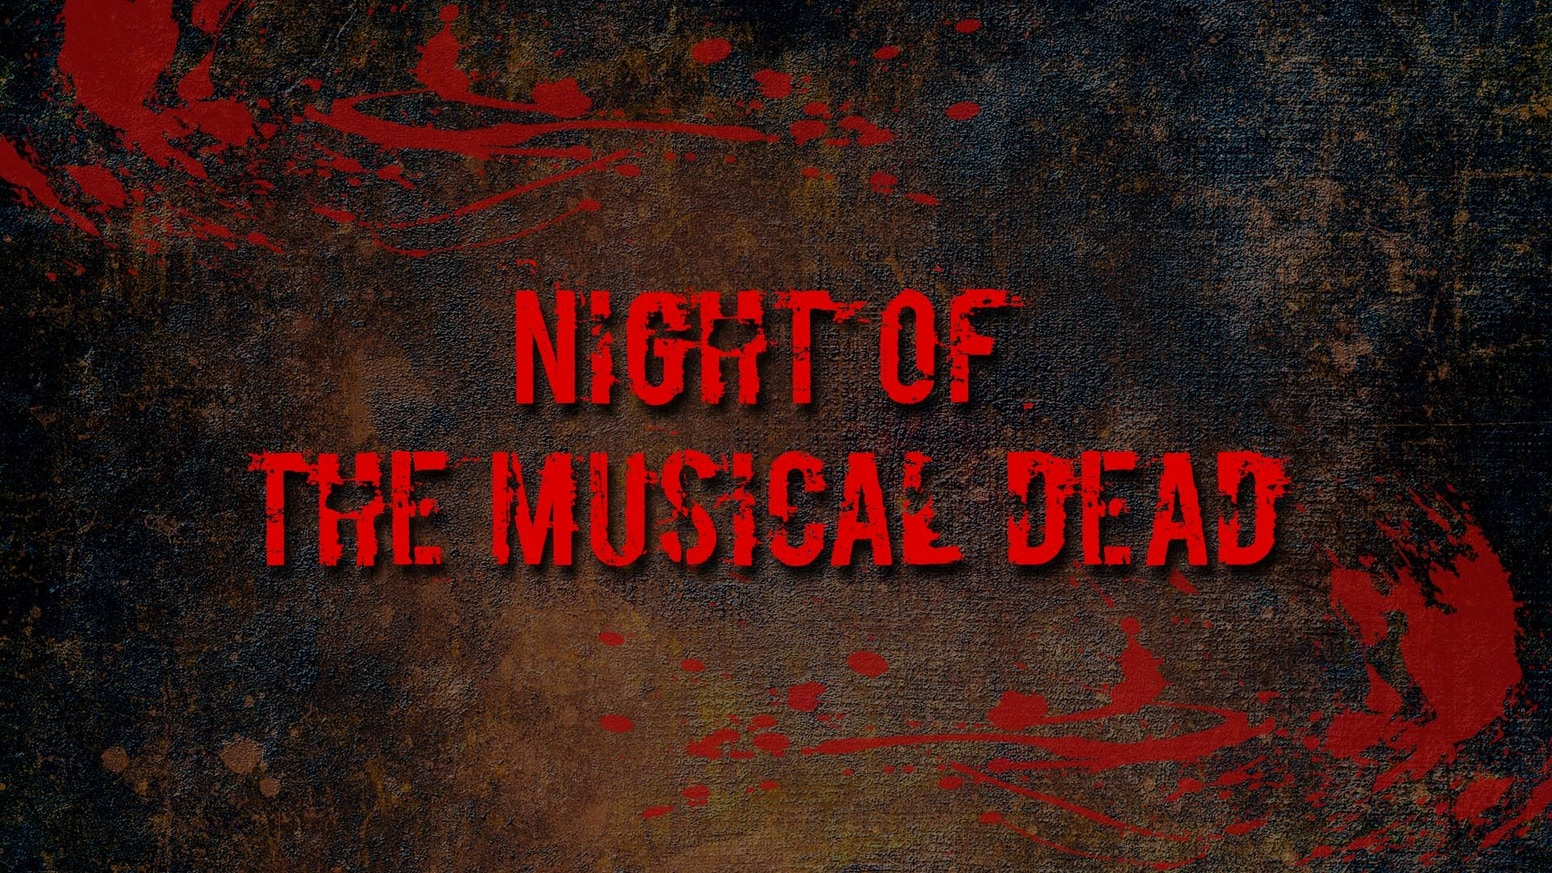 Night of the Musical Dead (the proof of concept film) by